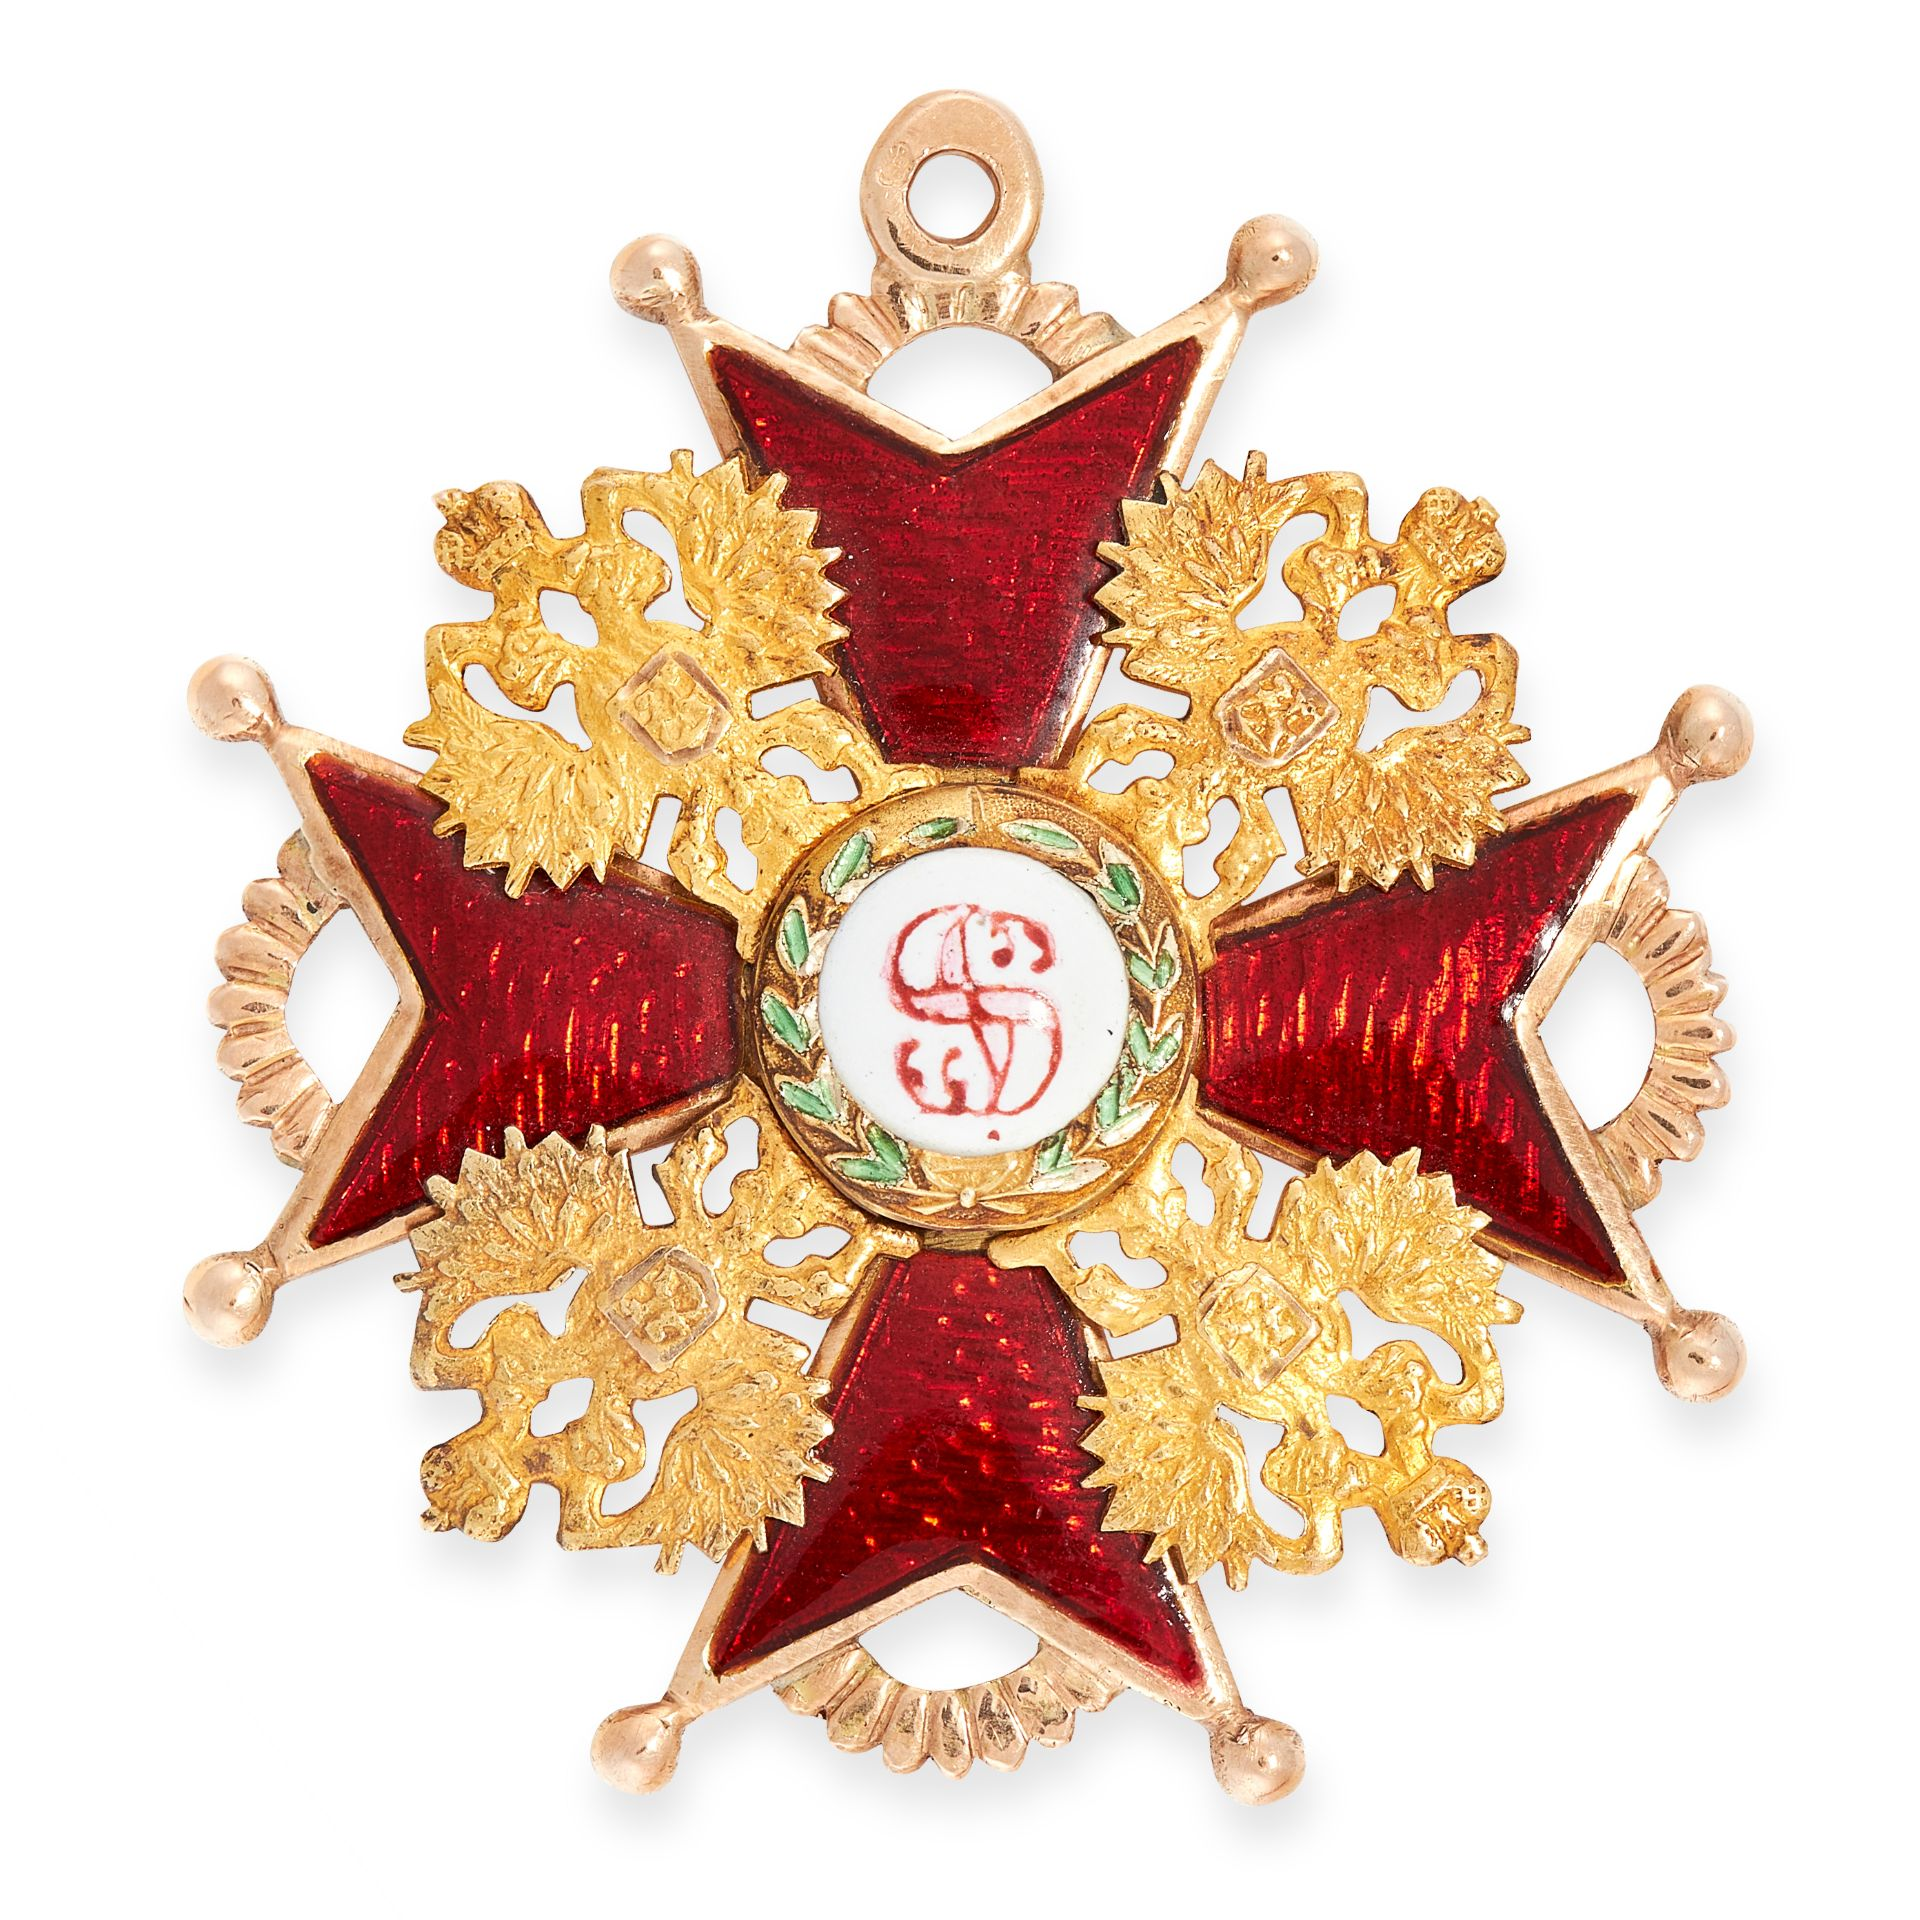 AN ANTIQUE IMPERIAL RUSSIAN ENAMEL ORDER OF ST STANISLAS MEDAL in 56 zolotnik gold, of the second